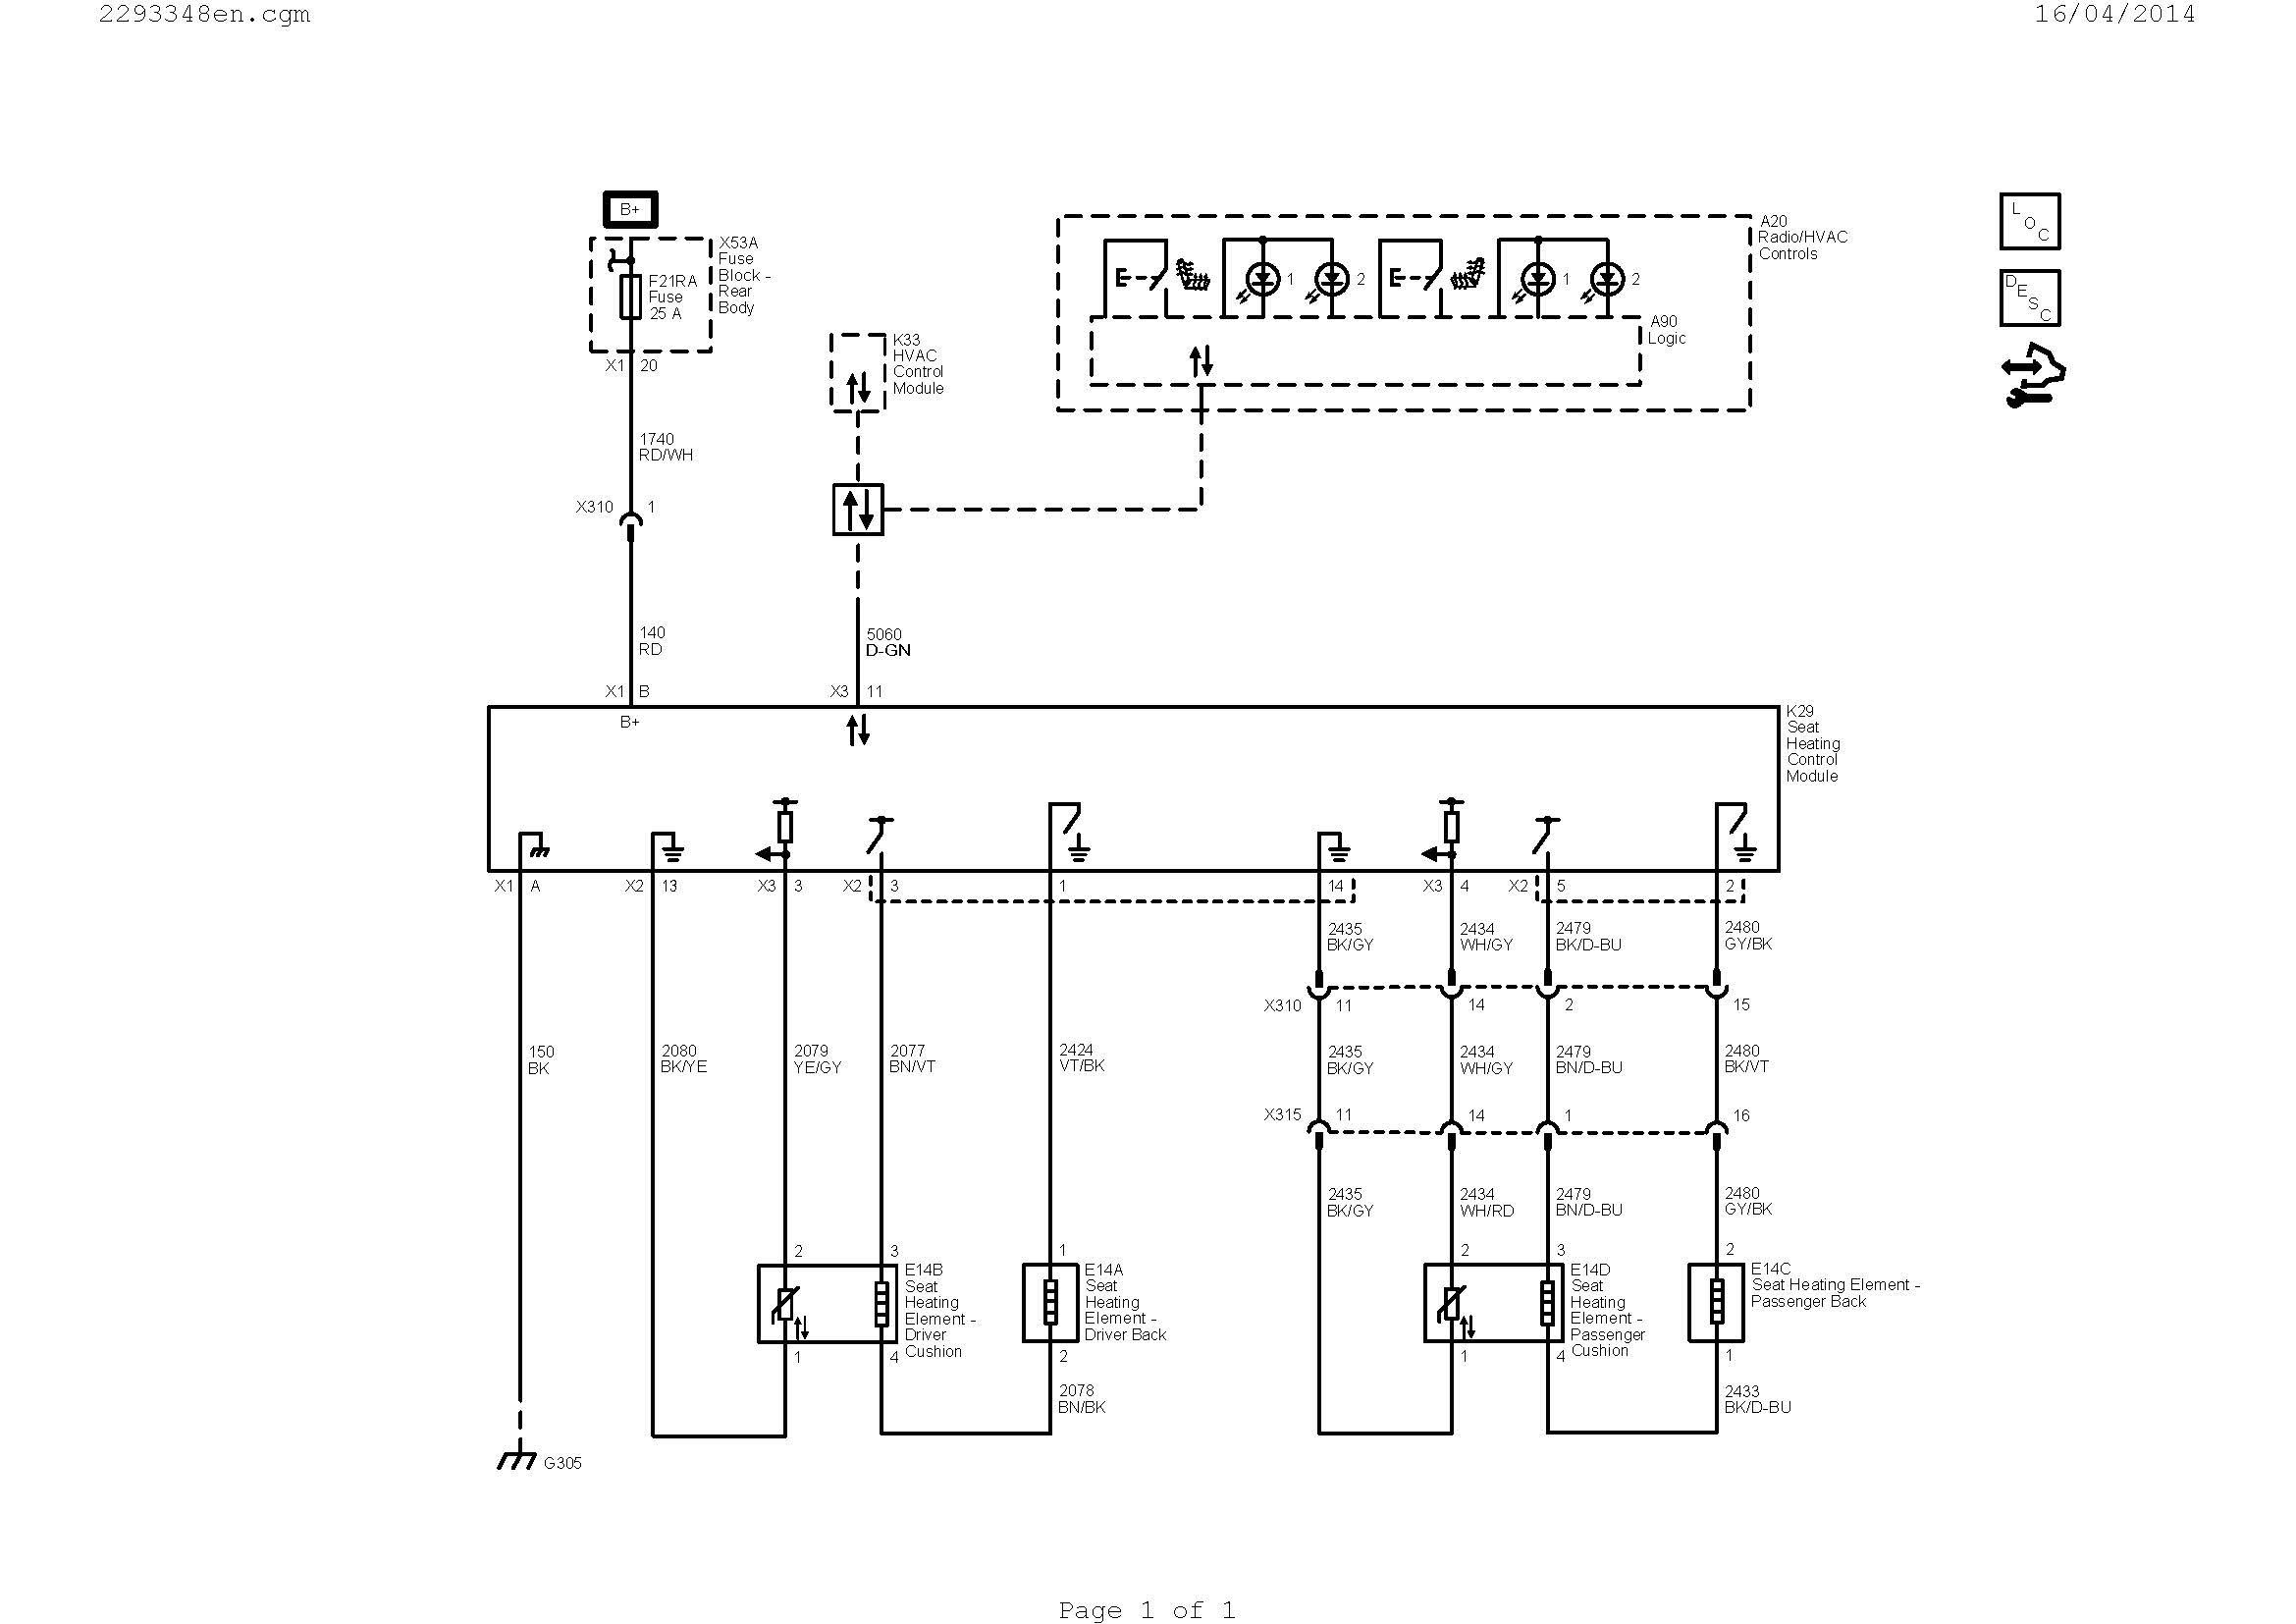 load center wiring diagram Collection-Load Center Wiring Diagram Wiring Diagram Sheets Detail Name Load Center Wiring 7-e